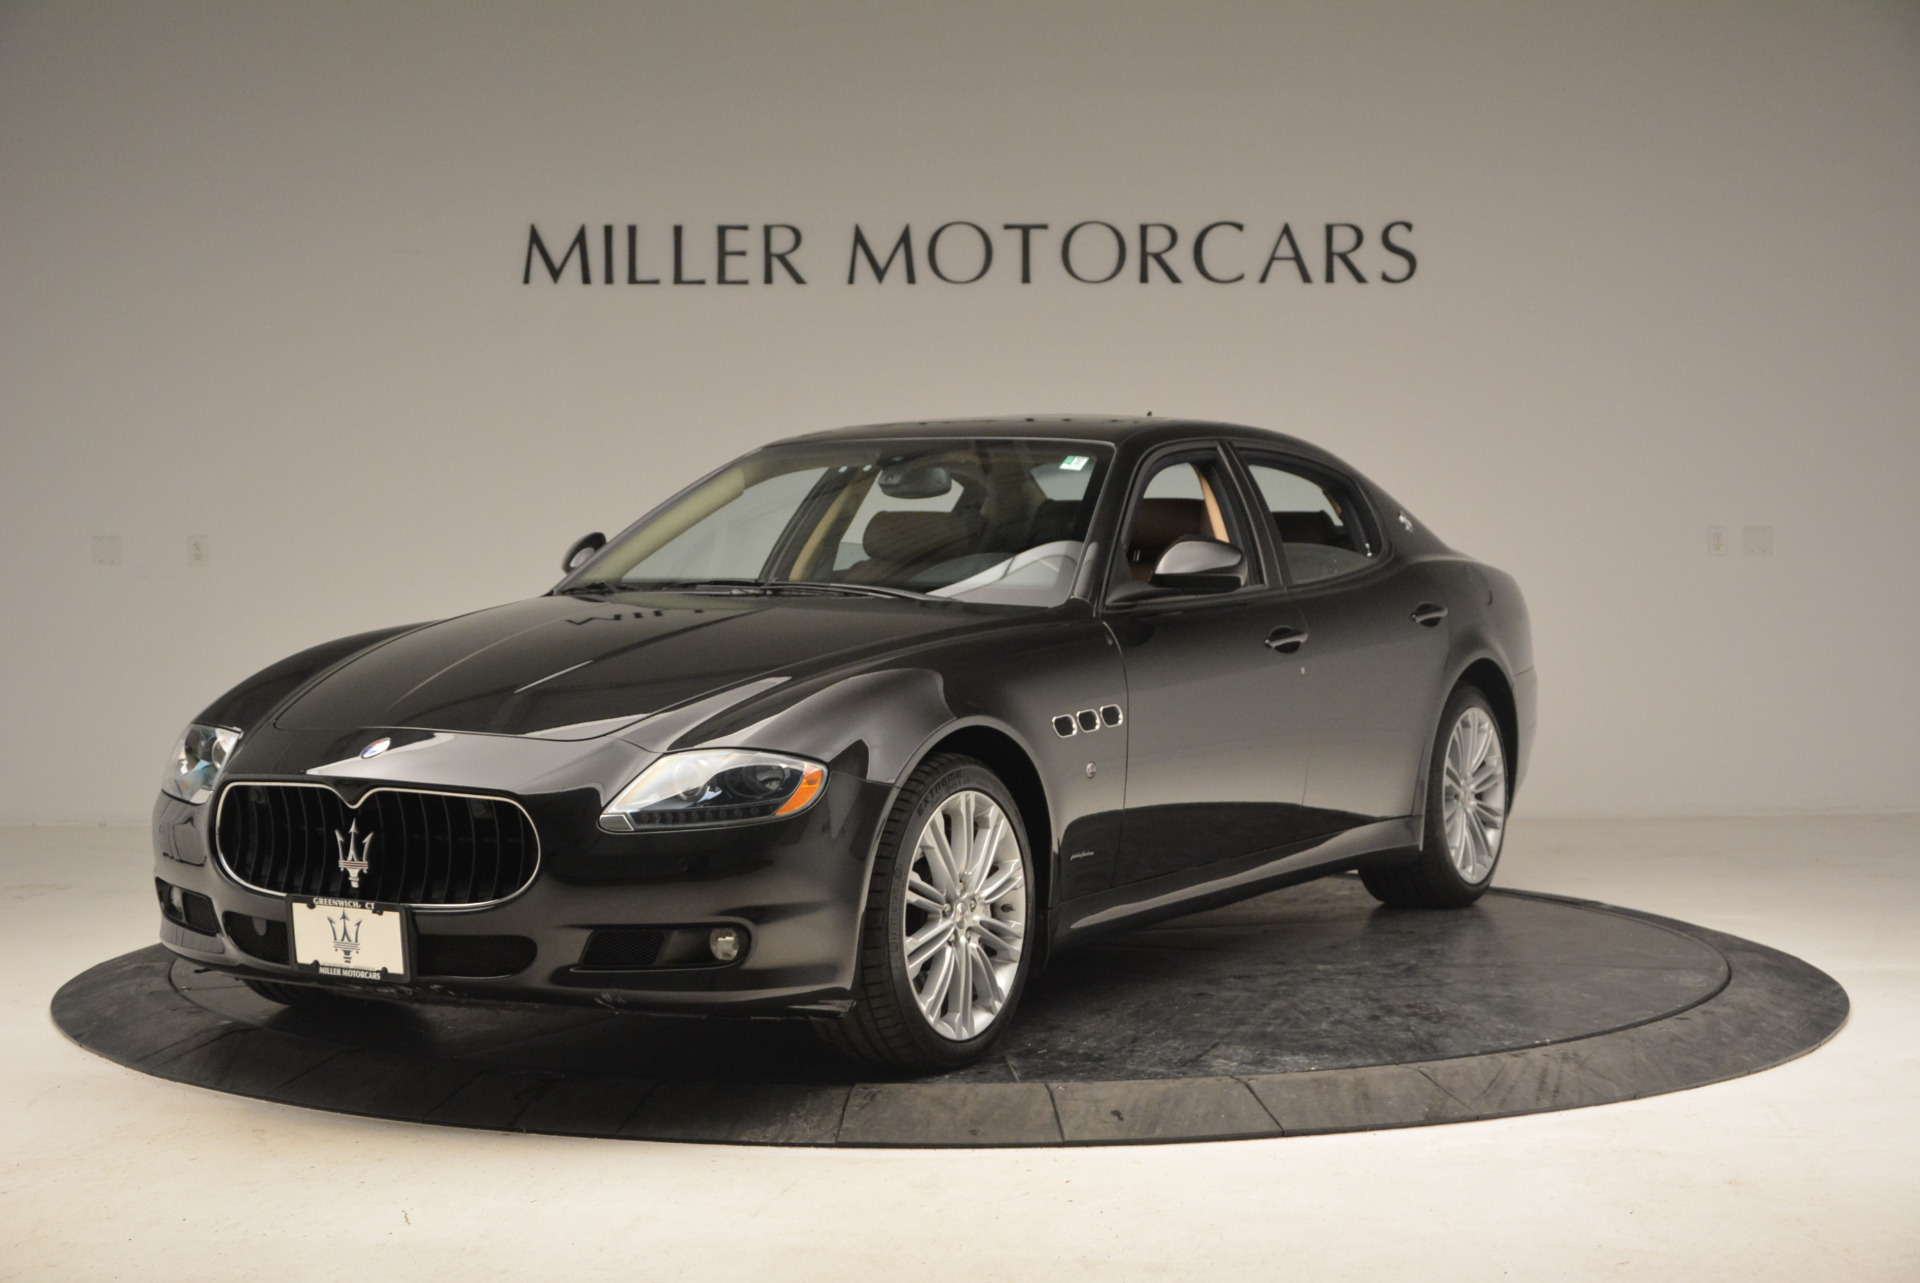 Used 2013 Maserati Quattroporte S for sale Sold at Maserati of Westport in Westport CT 06880 1